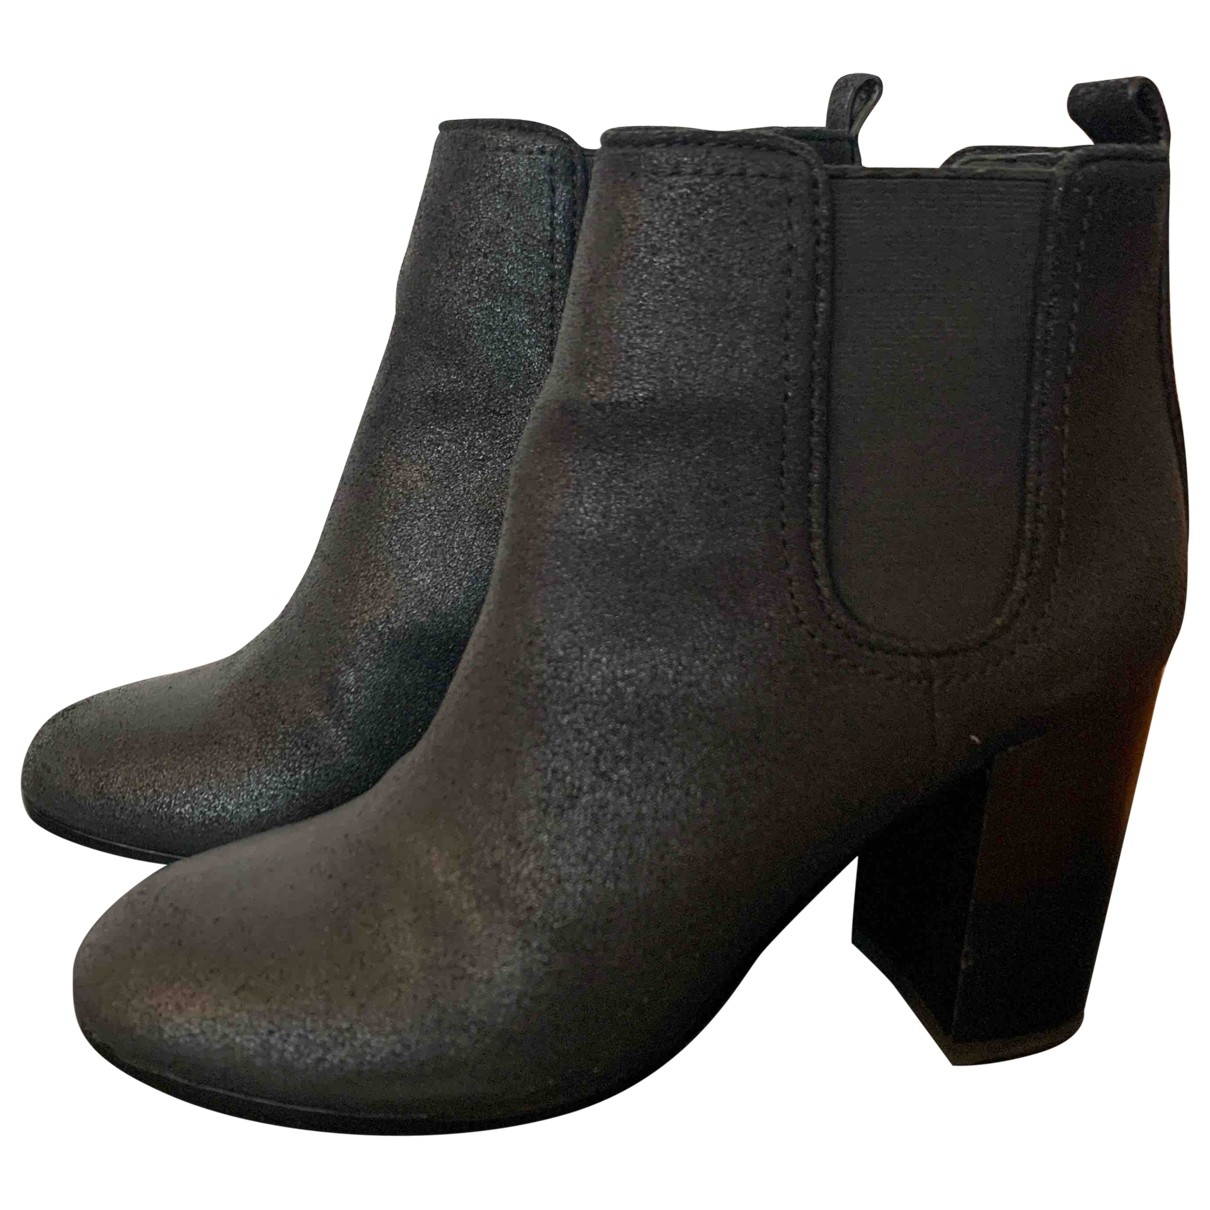 Tory Burch \N Black Leather Boots for Women 6.5 US